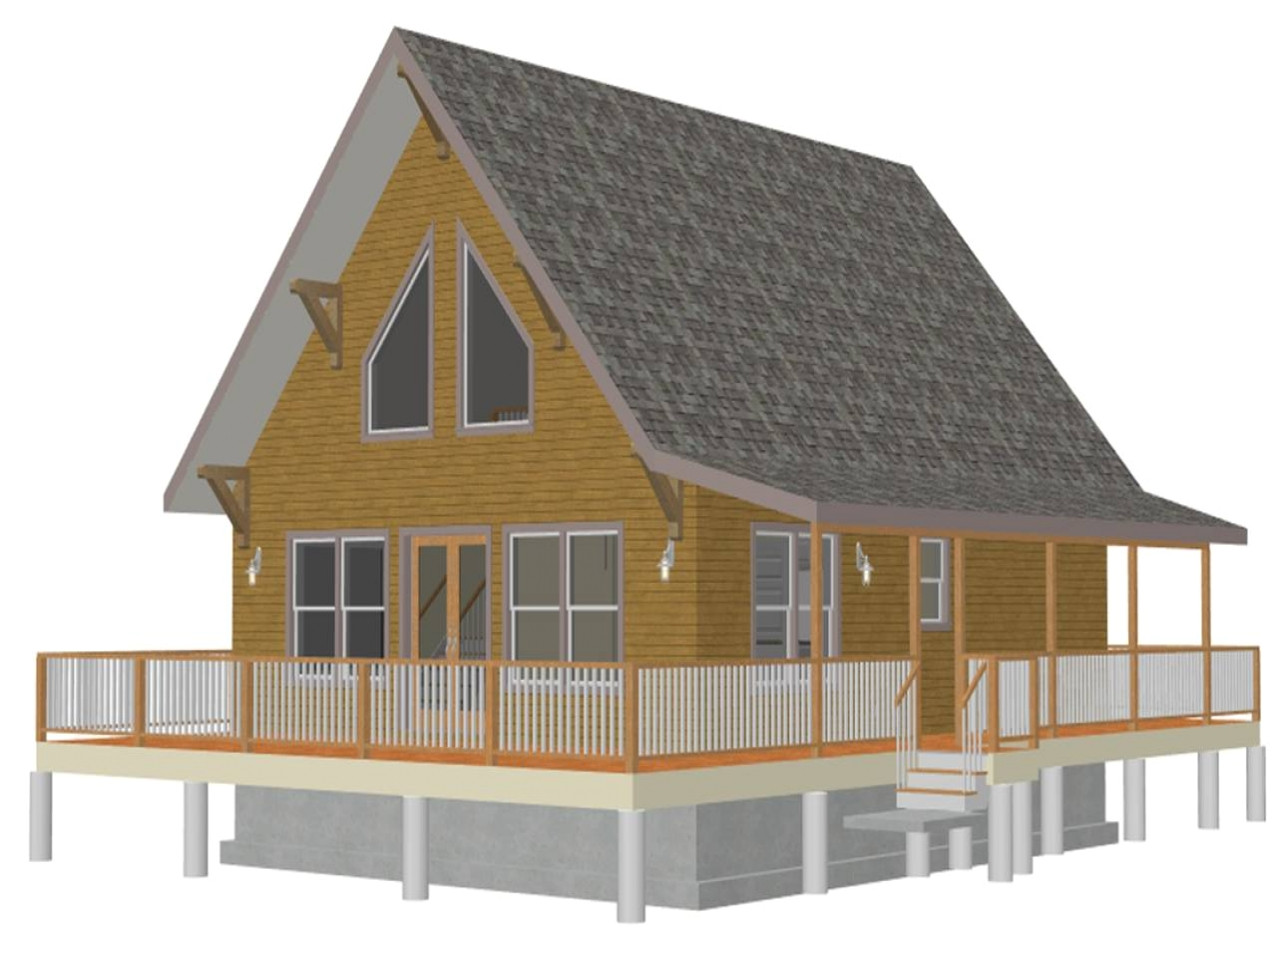 8e7d9f69921e8520 small cabin house plans with loft small rustic house plans